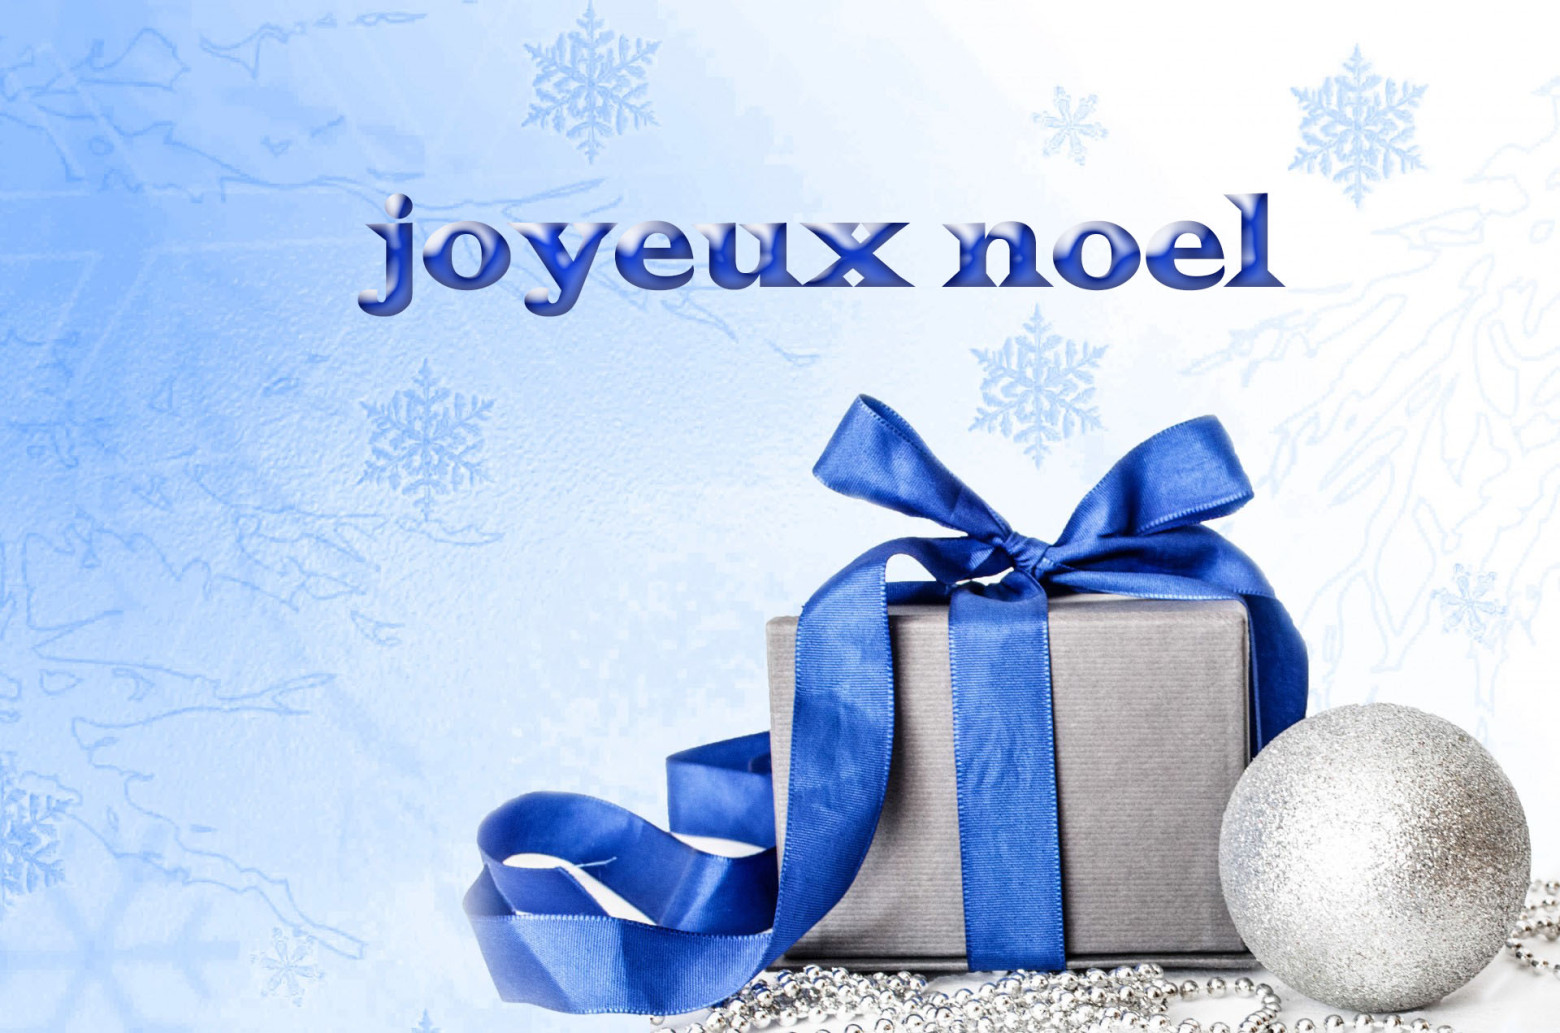 joyeux noel carte de voeux gratuites images gratuites et. Black Bedroom Furniture Sets. Home Design Ideas